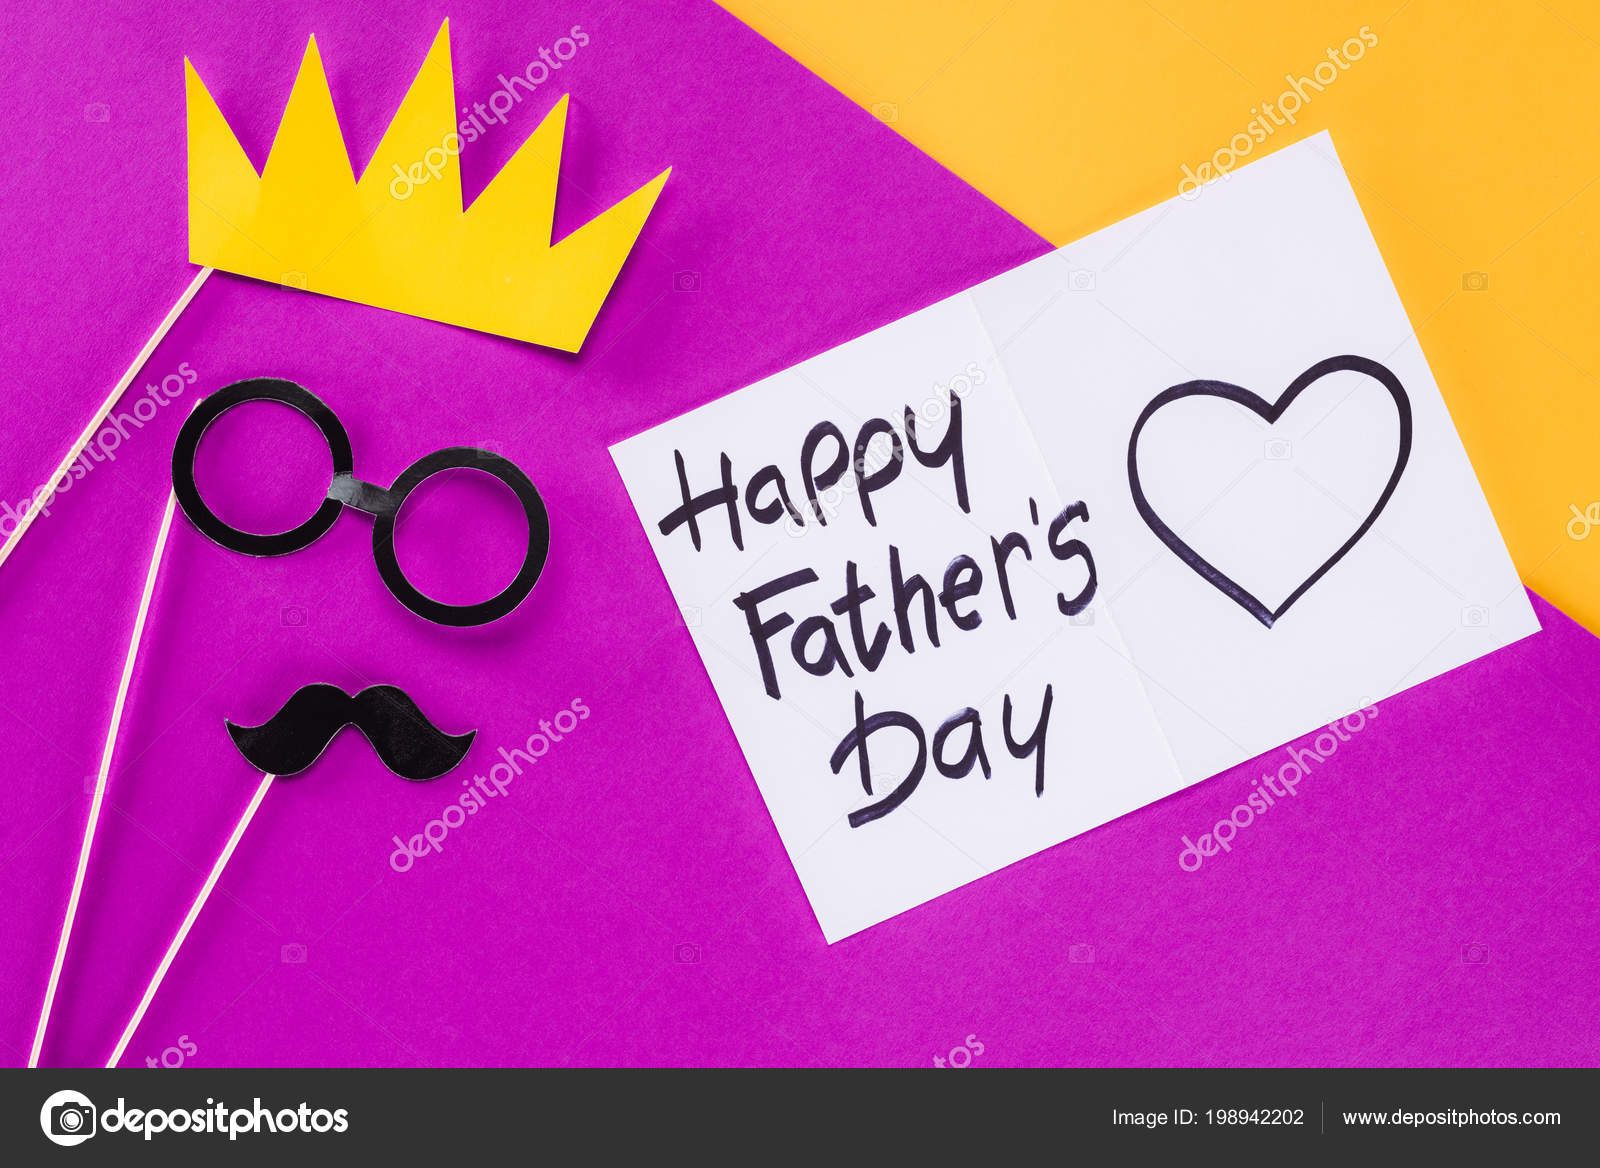 Top View King Face Gift Box Happy Fathers Day Greeting Stock Photo